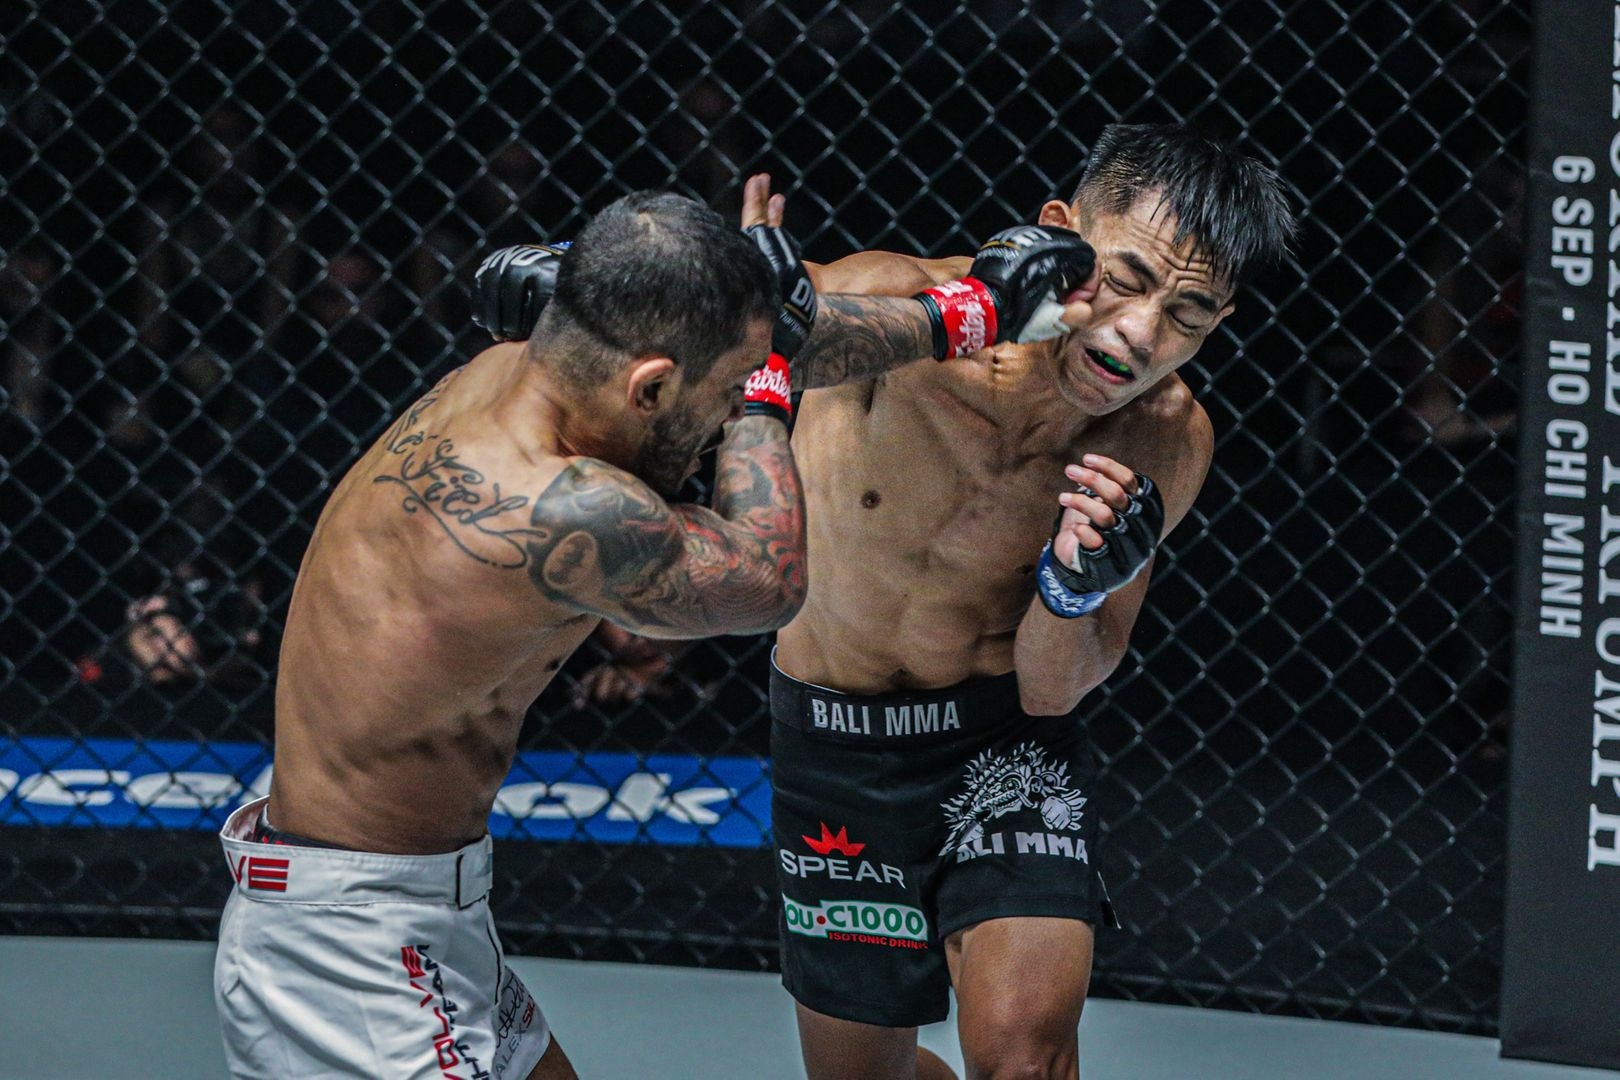 Alex Silva defeats Stefer Rahardian by armbar submission at ONE DREAMS OF GOLD